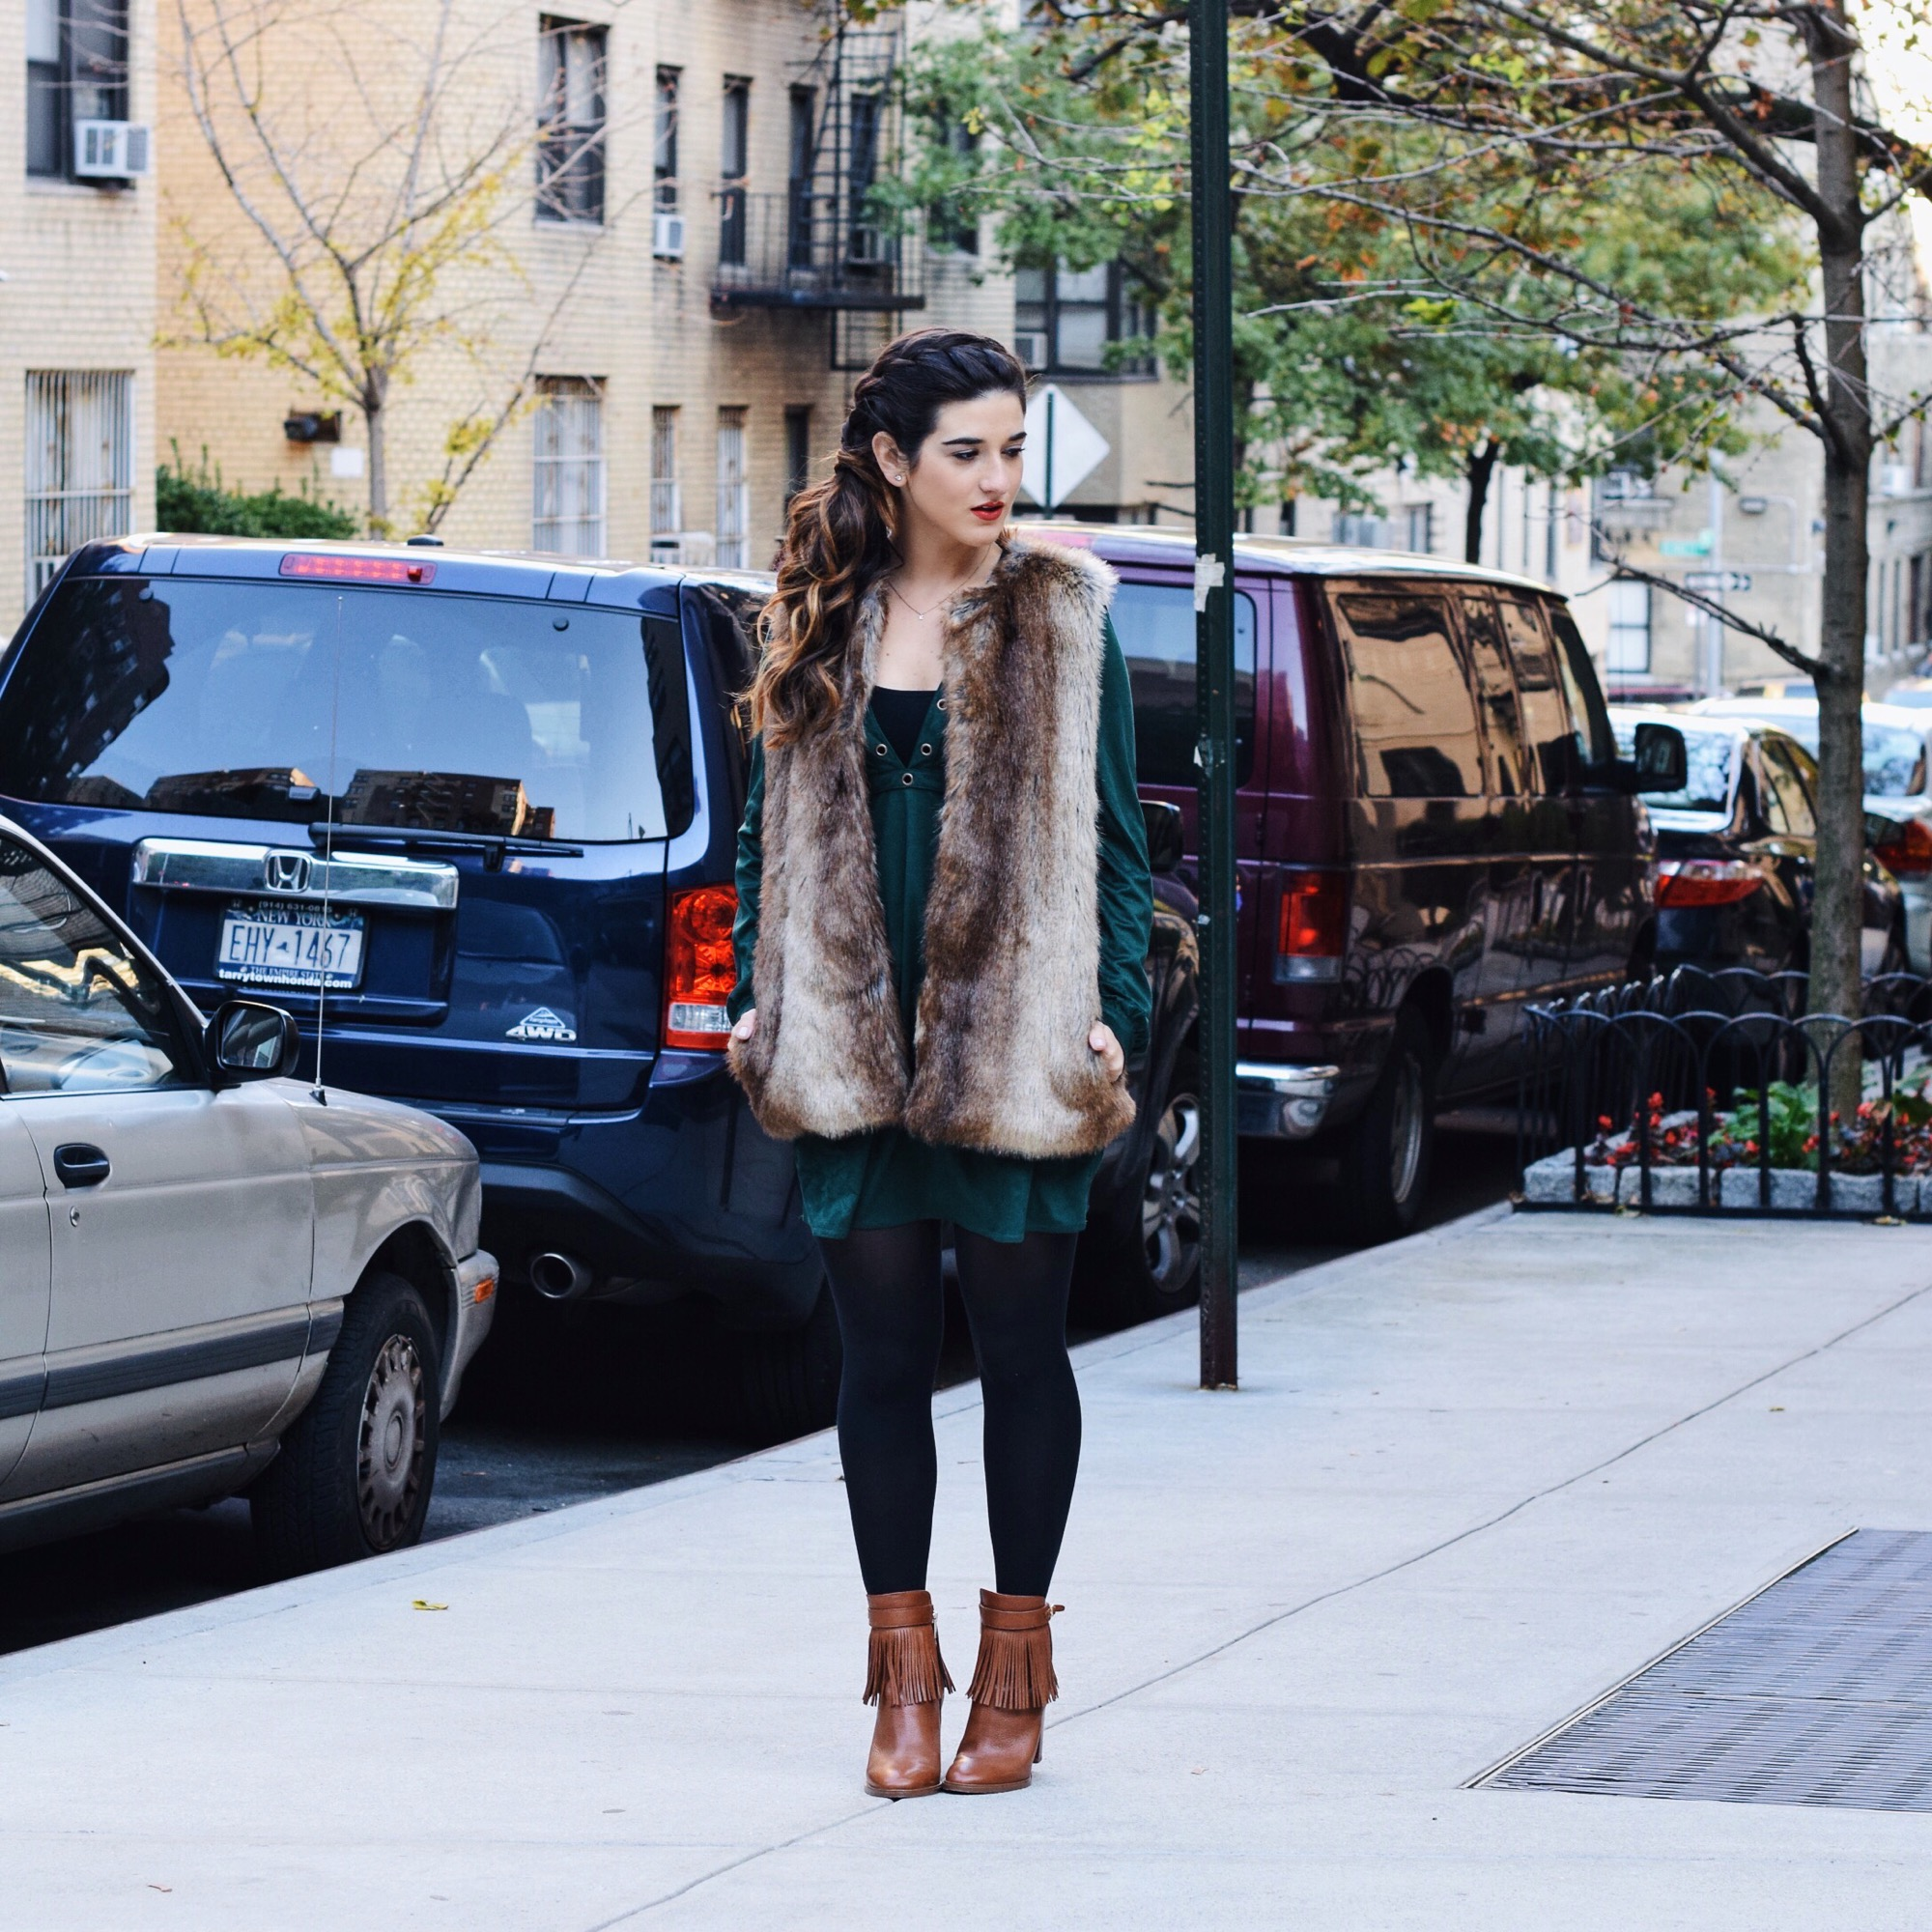 Suede Eyelet Dress Trescool Louboutins & Love Fashion Blog Esther Santer Street Style NYC Blogger Fall Winter Black Tights Ivanka Trump Fringe Booties Camel Hair Girl Women Beautiful Photoshoot Model Outfit OOTD Fur Vest Zara Inspo Trendy What To Wear.JPG